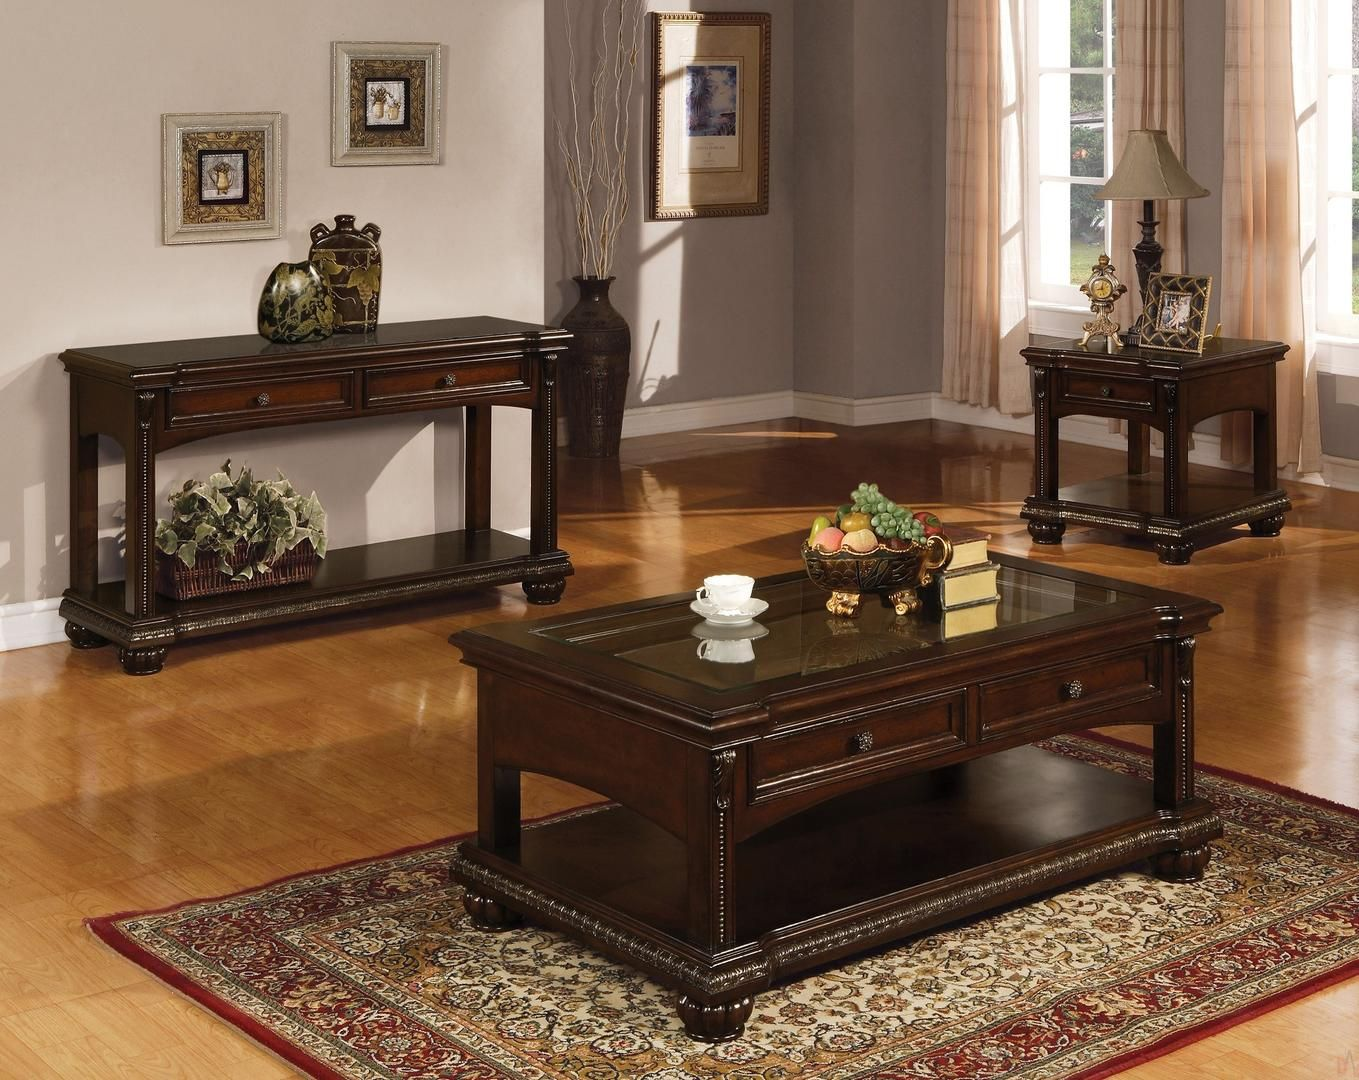 Acme Furniture 10322ces 1 579 89 Living Room Table Sets Traditional Coffee Table Coffee Table